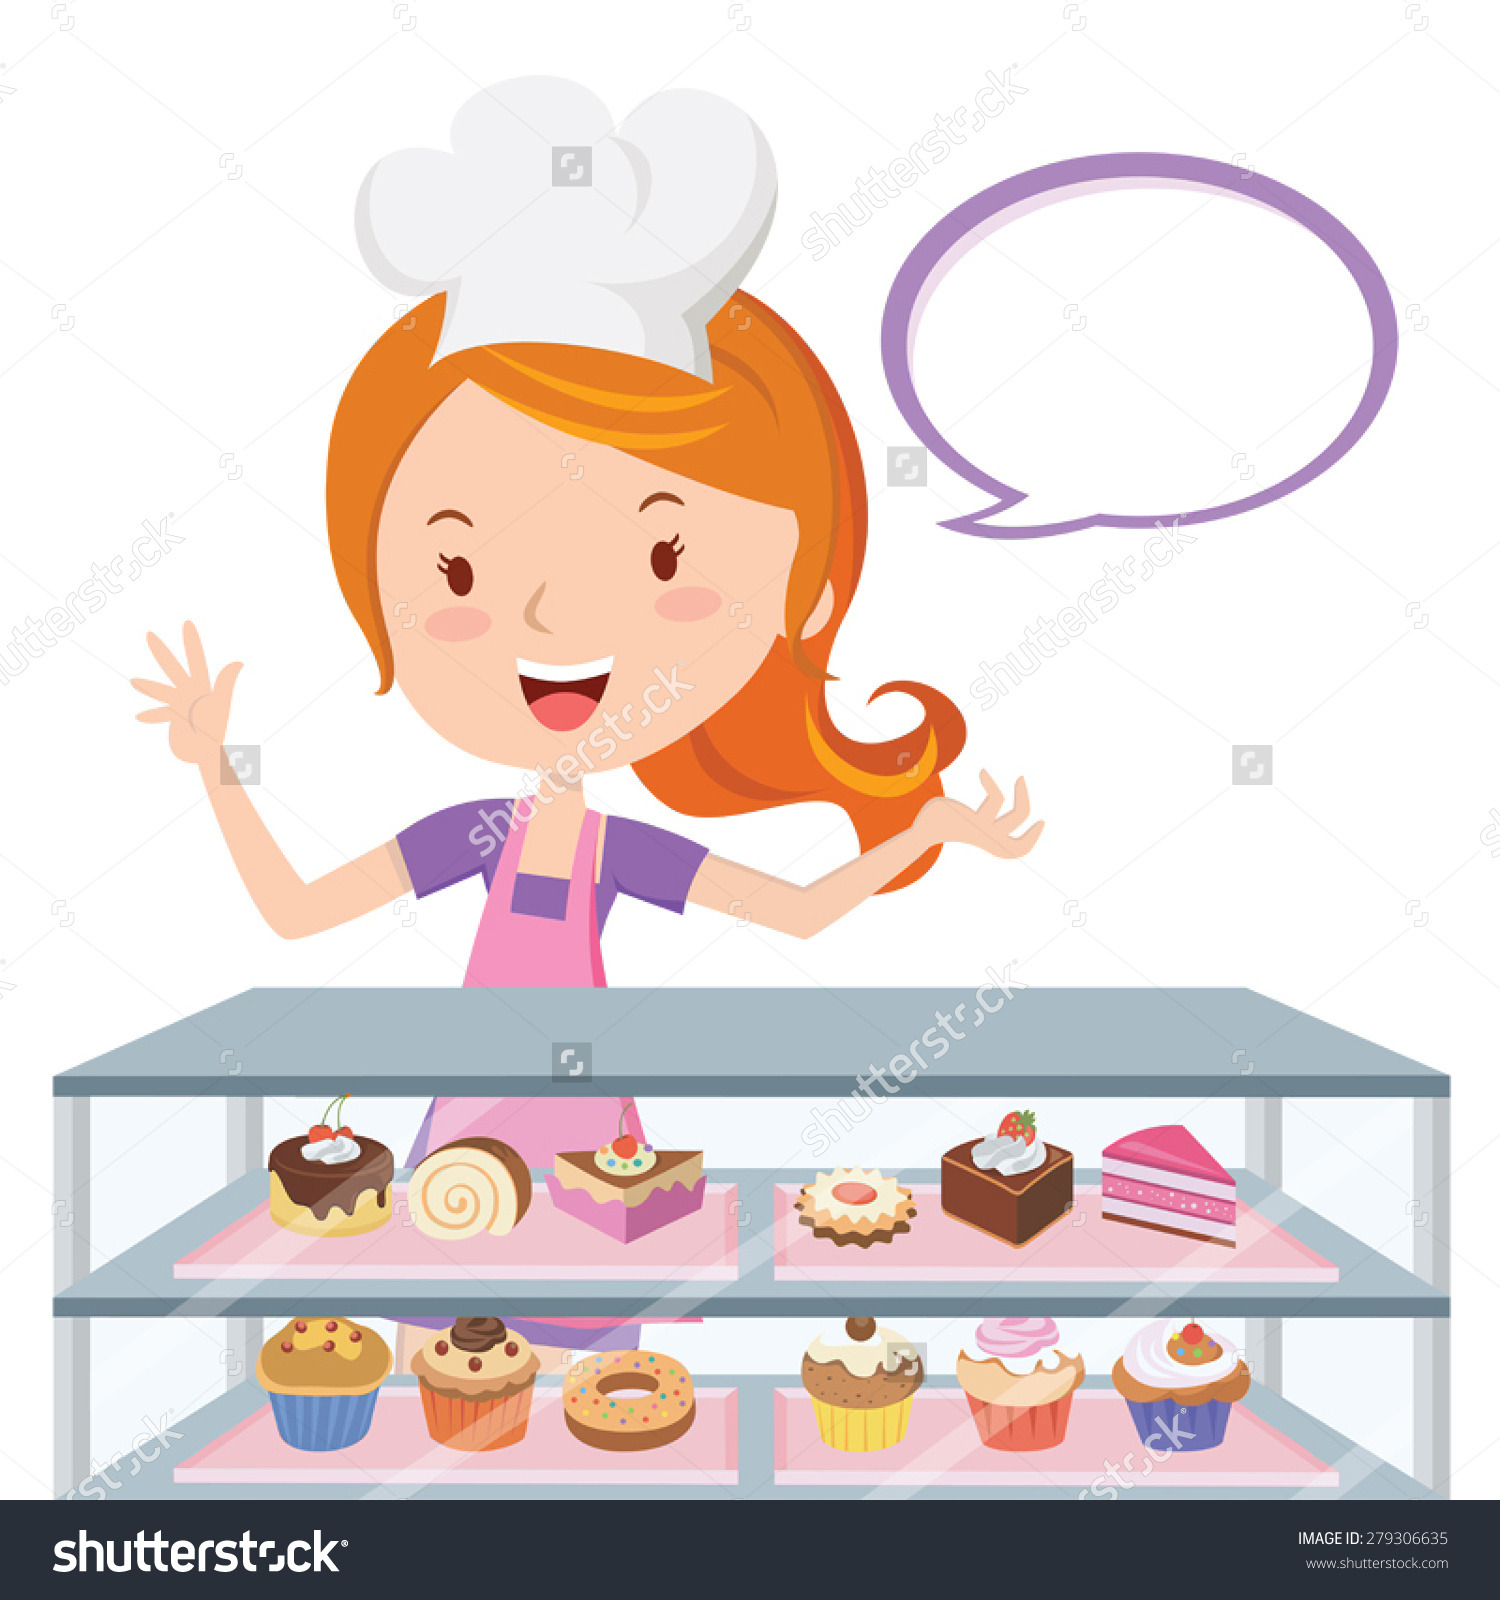 Pastry Chef Clipart.